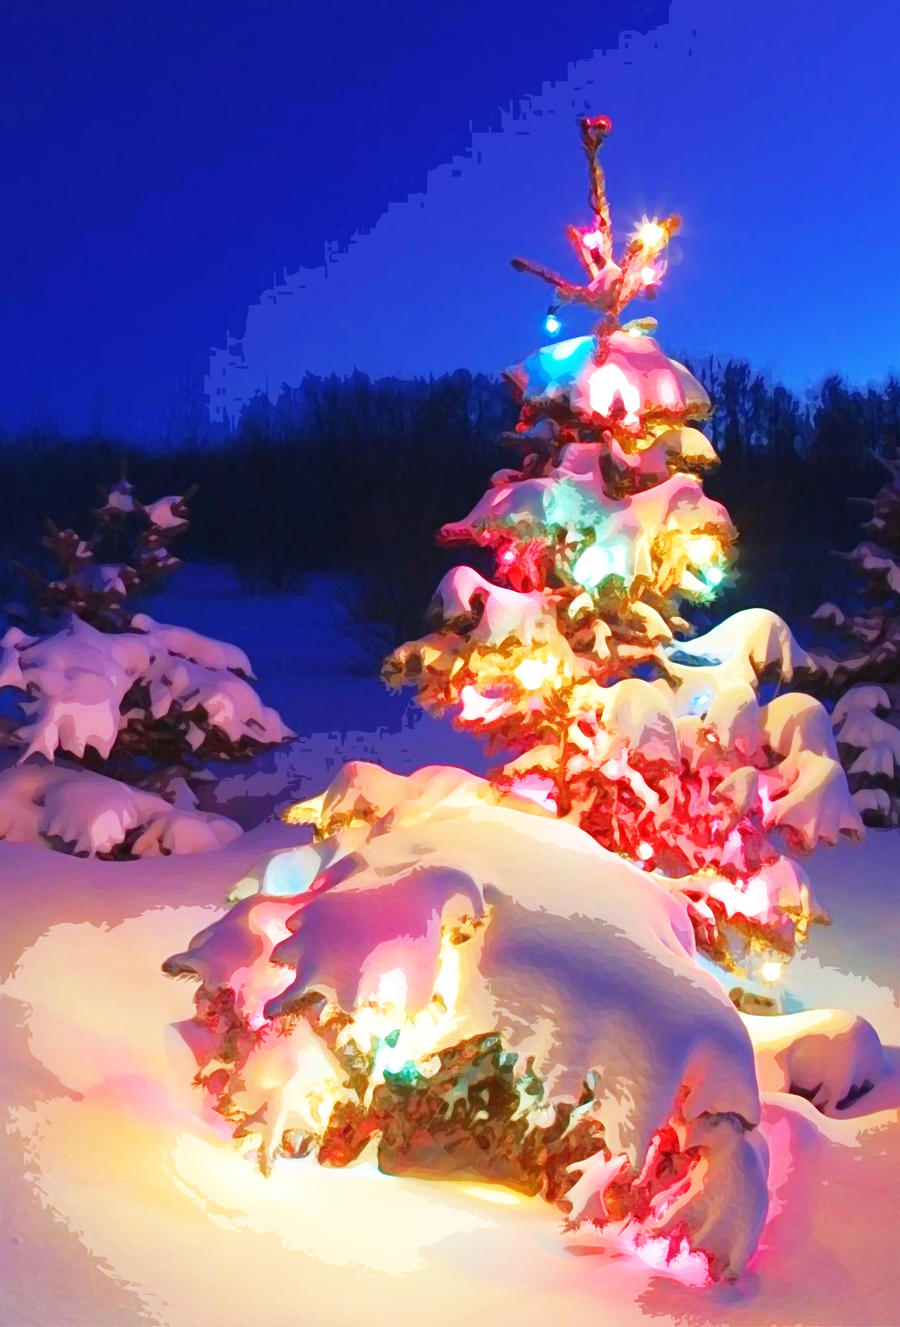 ... Snow Covered Christmas Tree In Snowstorm By Motionage